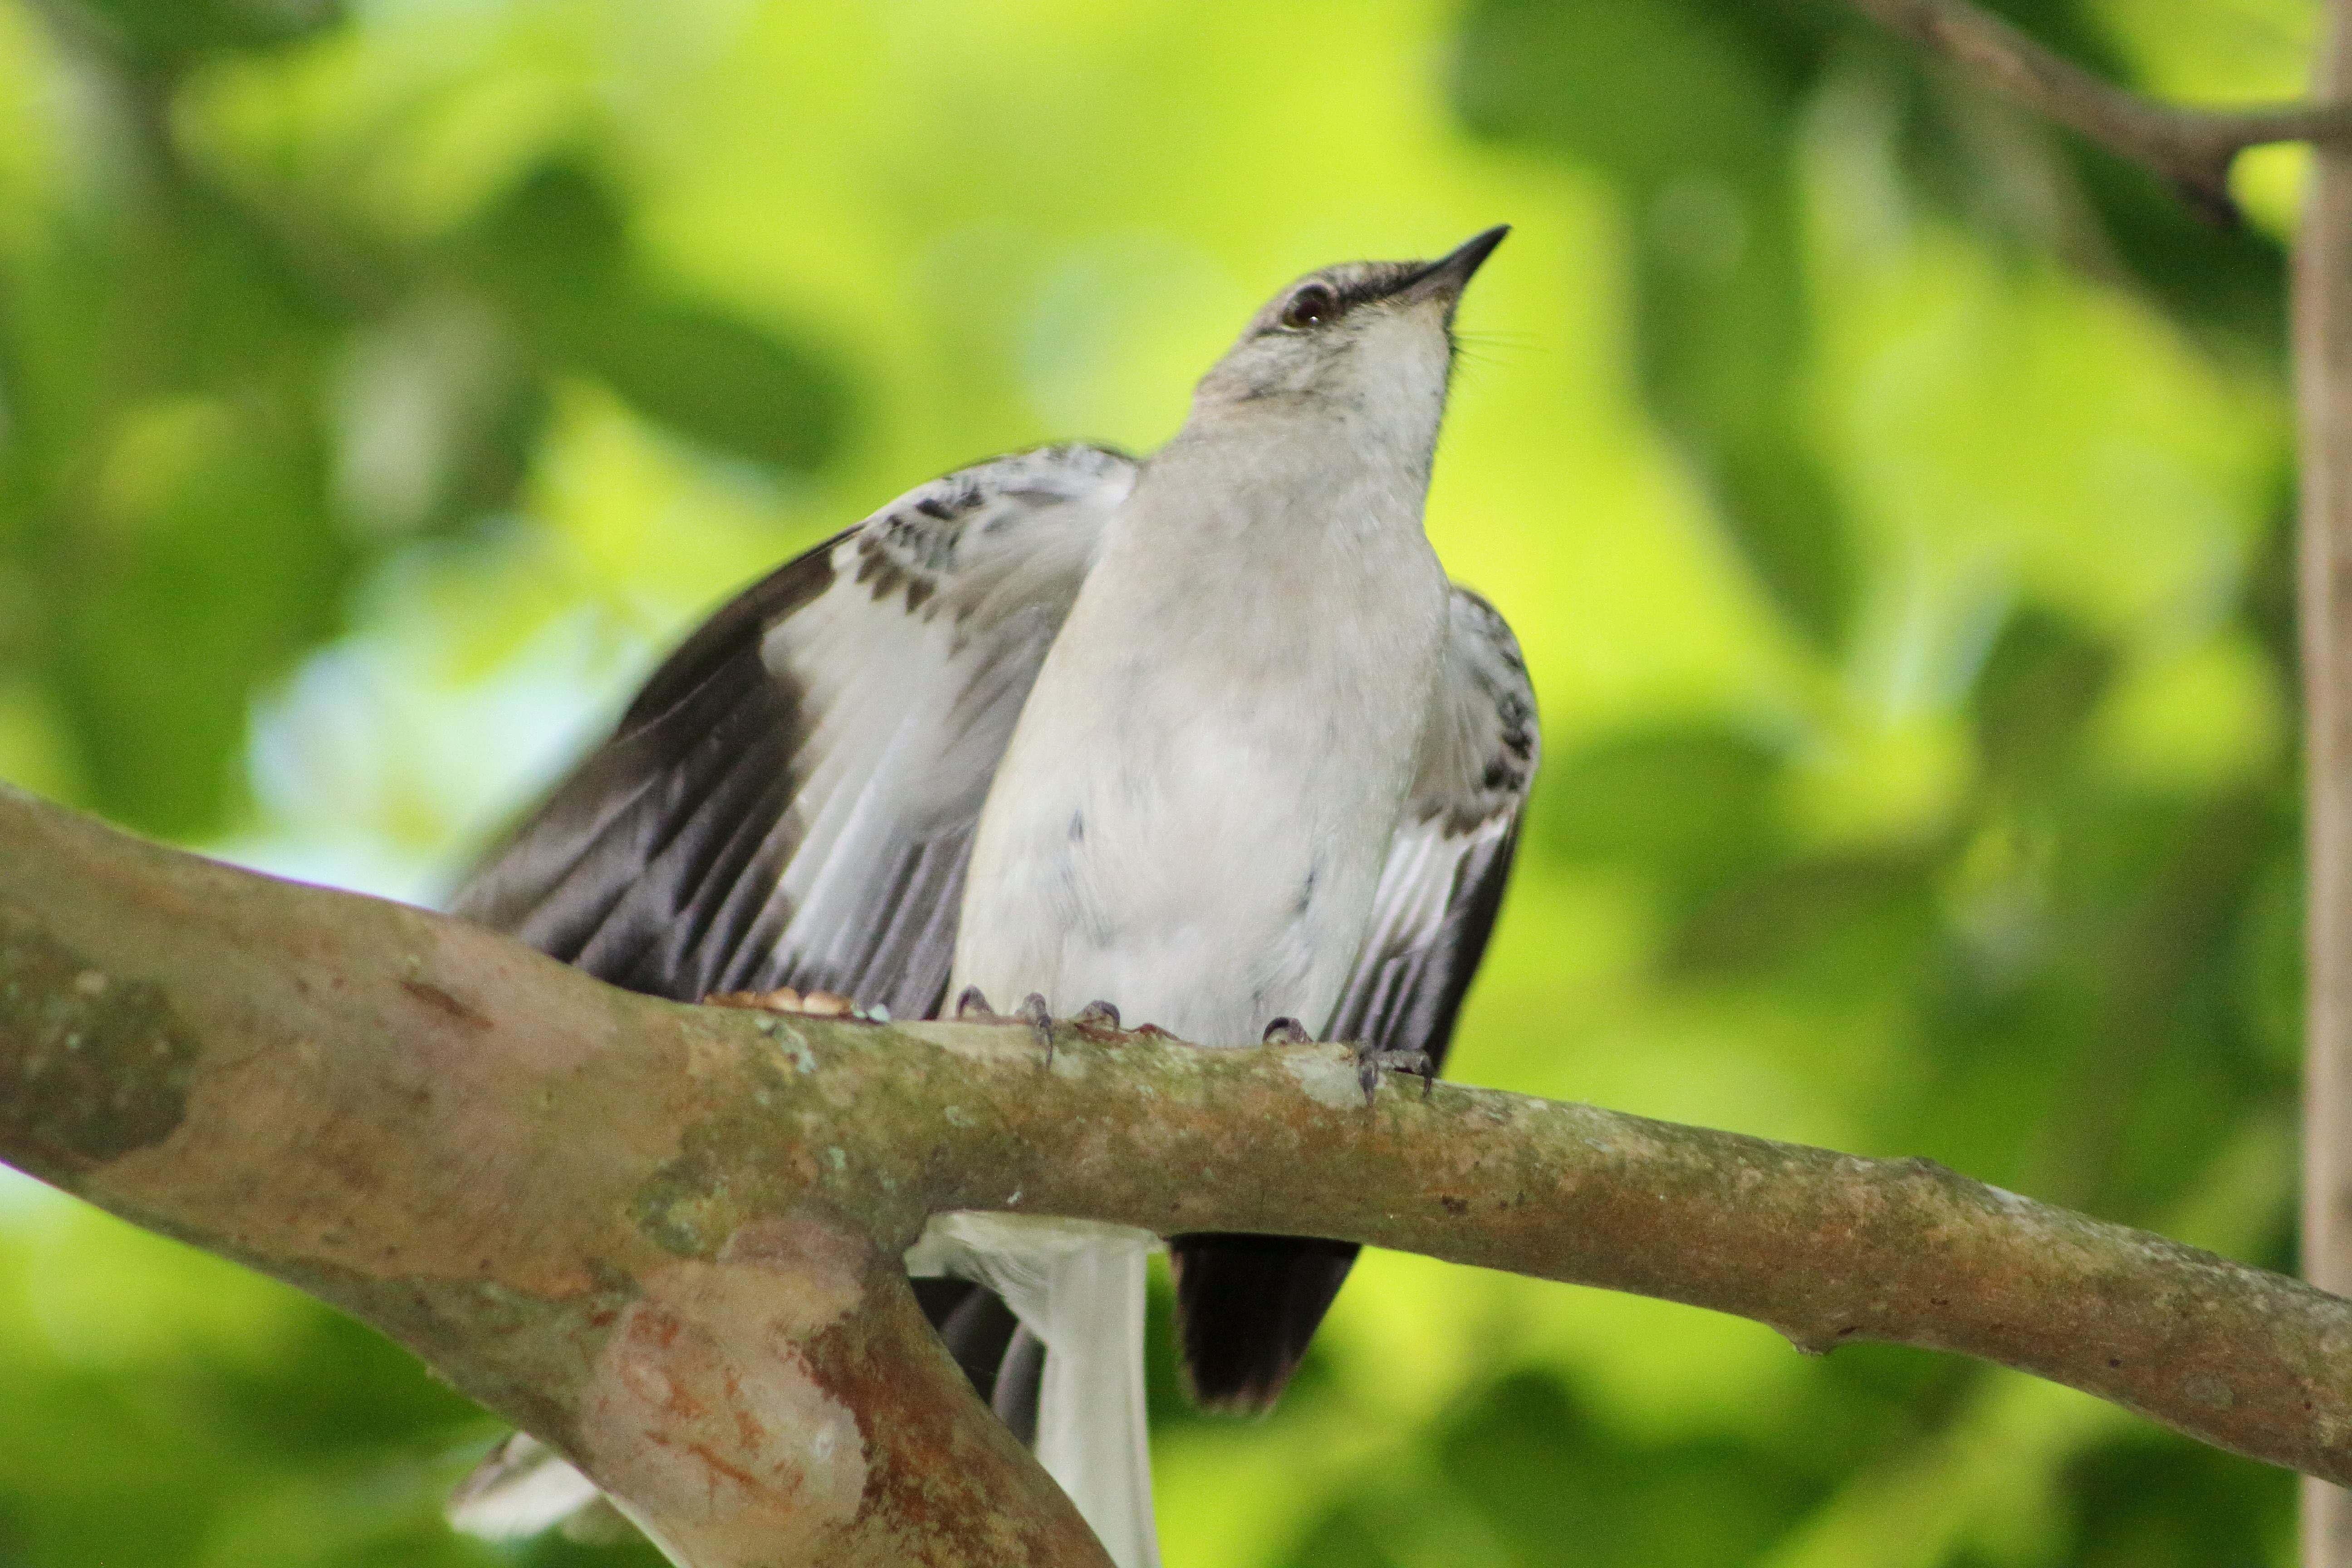 IMG_1214_Mockingbird.jpg